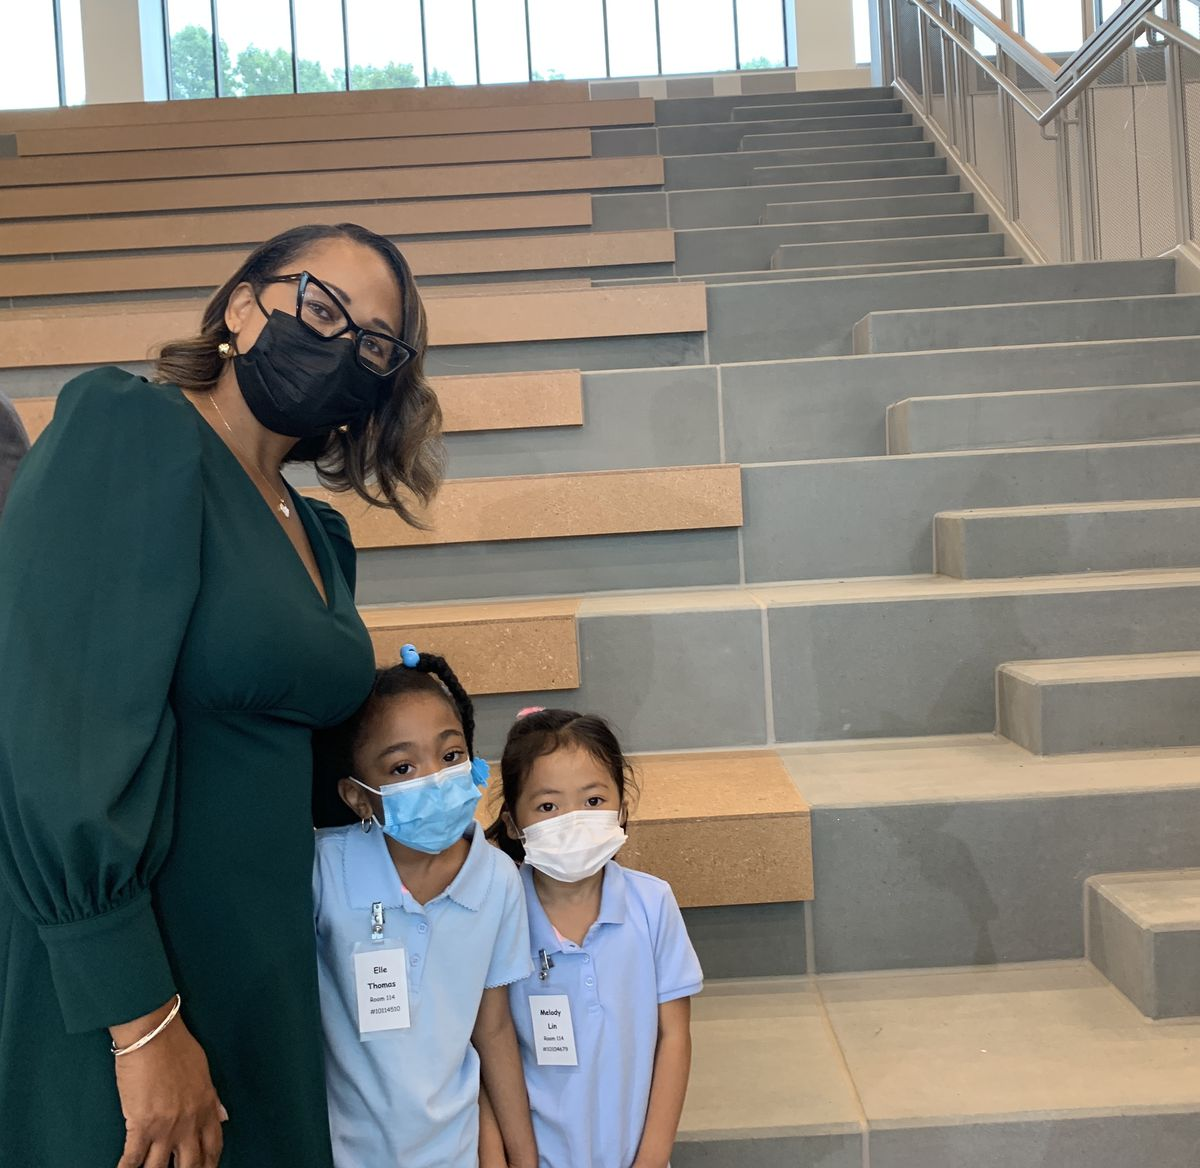 A woman wearing a green dress, black mask and glasses poses for a picture with two young girls, both wearing blue shirts and protective masks.